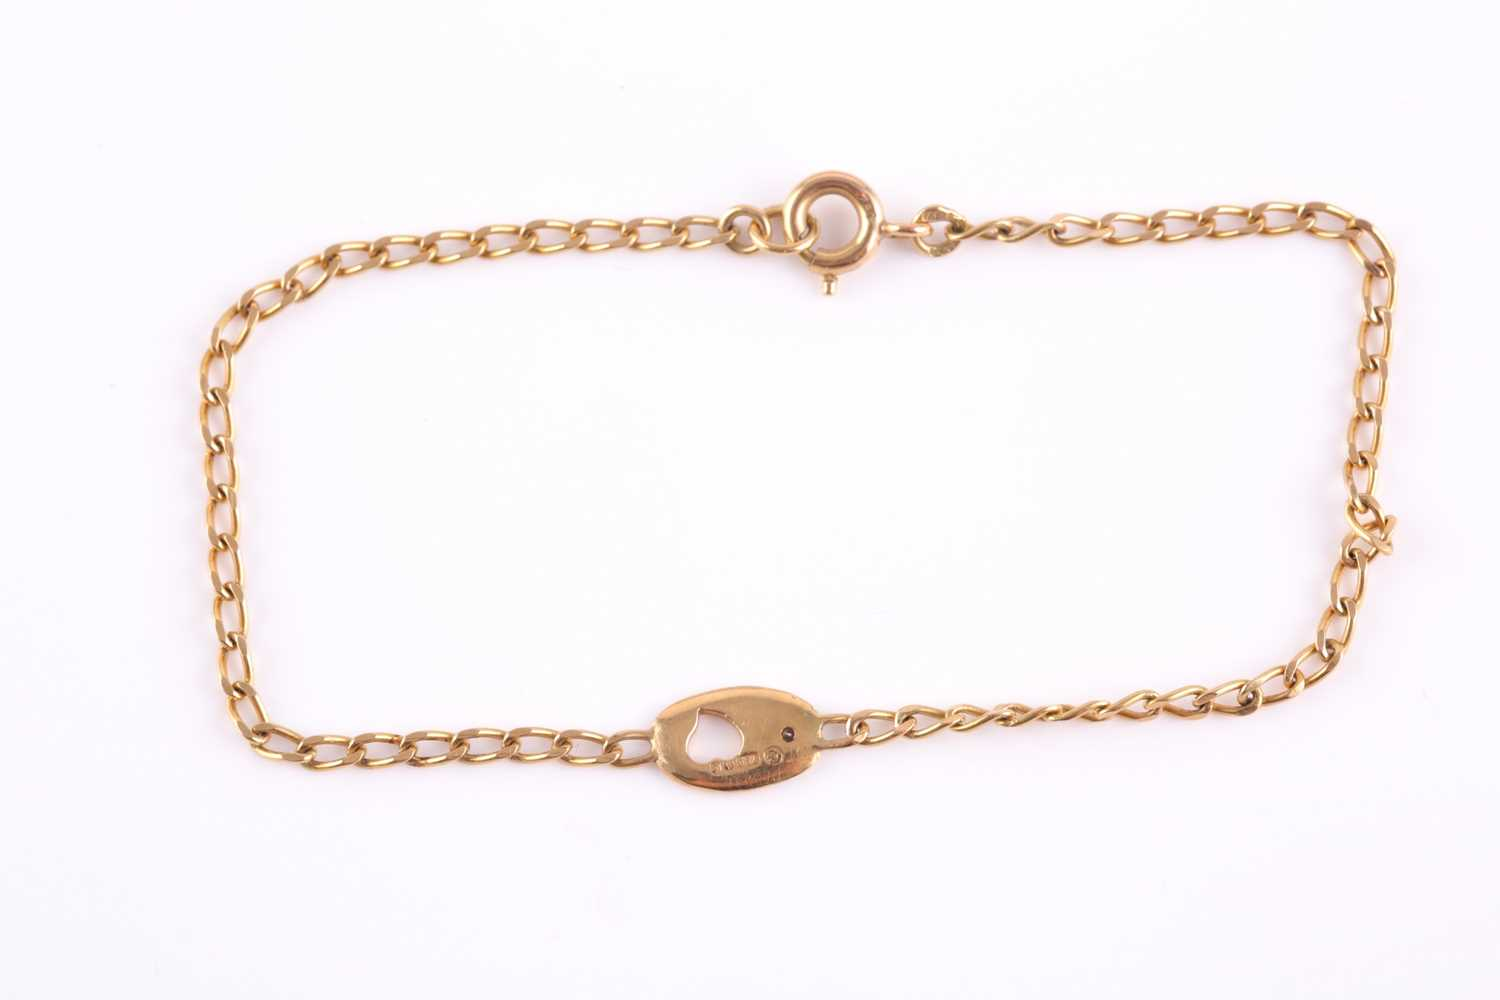 An 18ct yellow gold bracelet, with a small oval pendant loop inset with a small white stone, 18 cm - Image 2 of 3